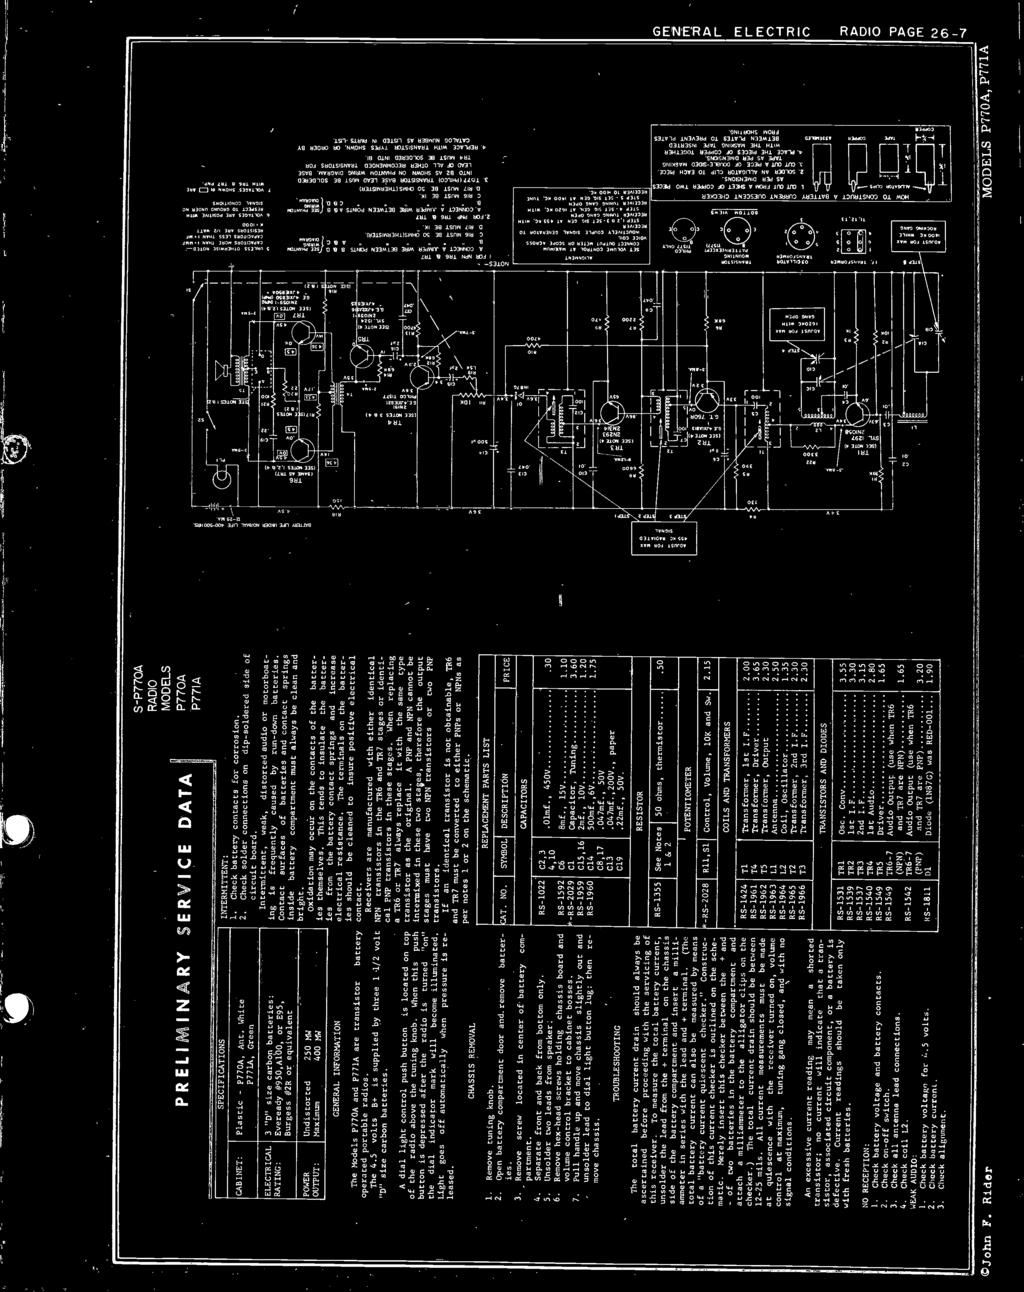 Transistor Radio Section Pdf Of Fortune Circuit Diagram Electronic Diagrams Schematics P77a Are Battery Operated Portable Radios The 45 Volts B Is Supplied By Three